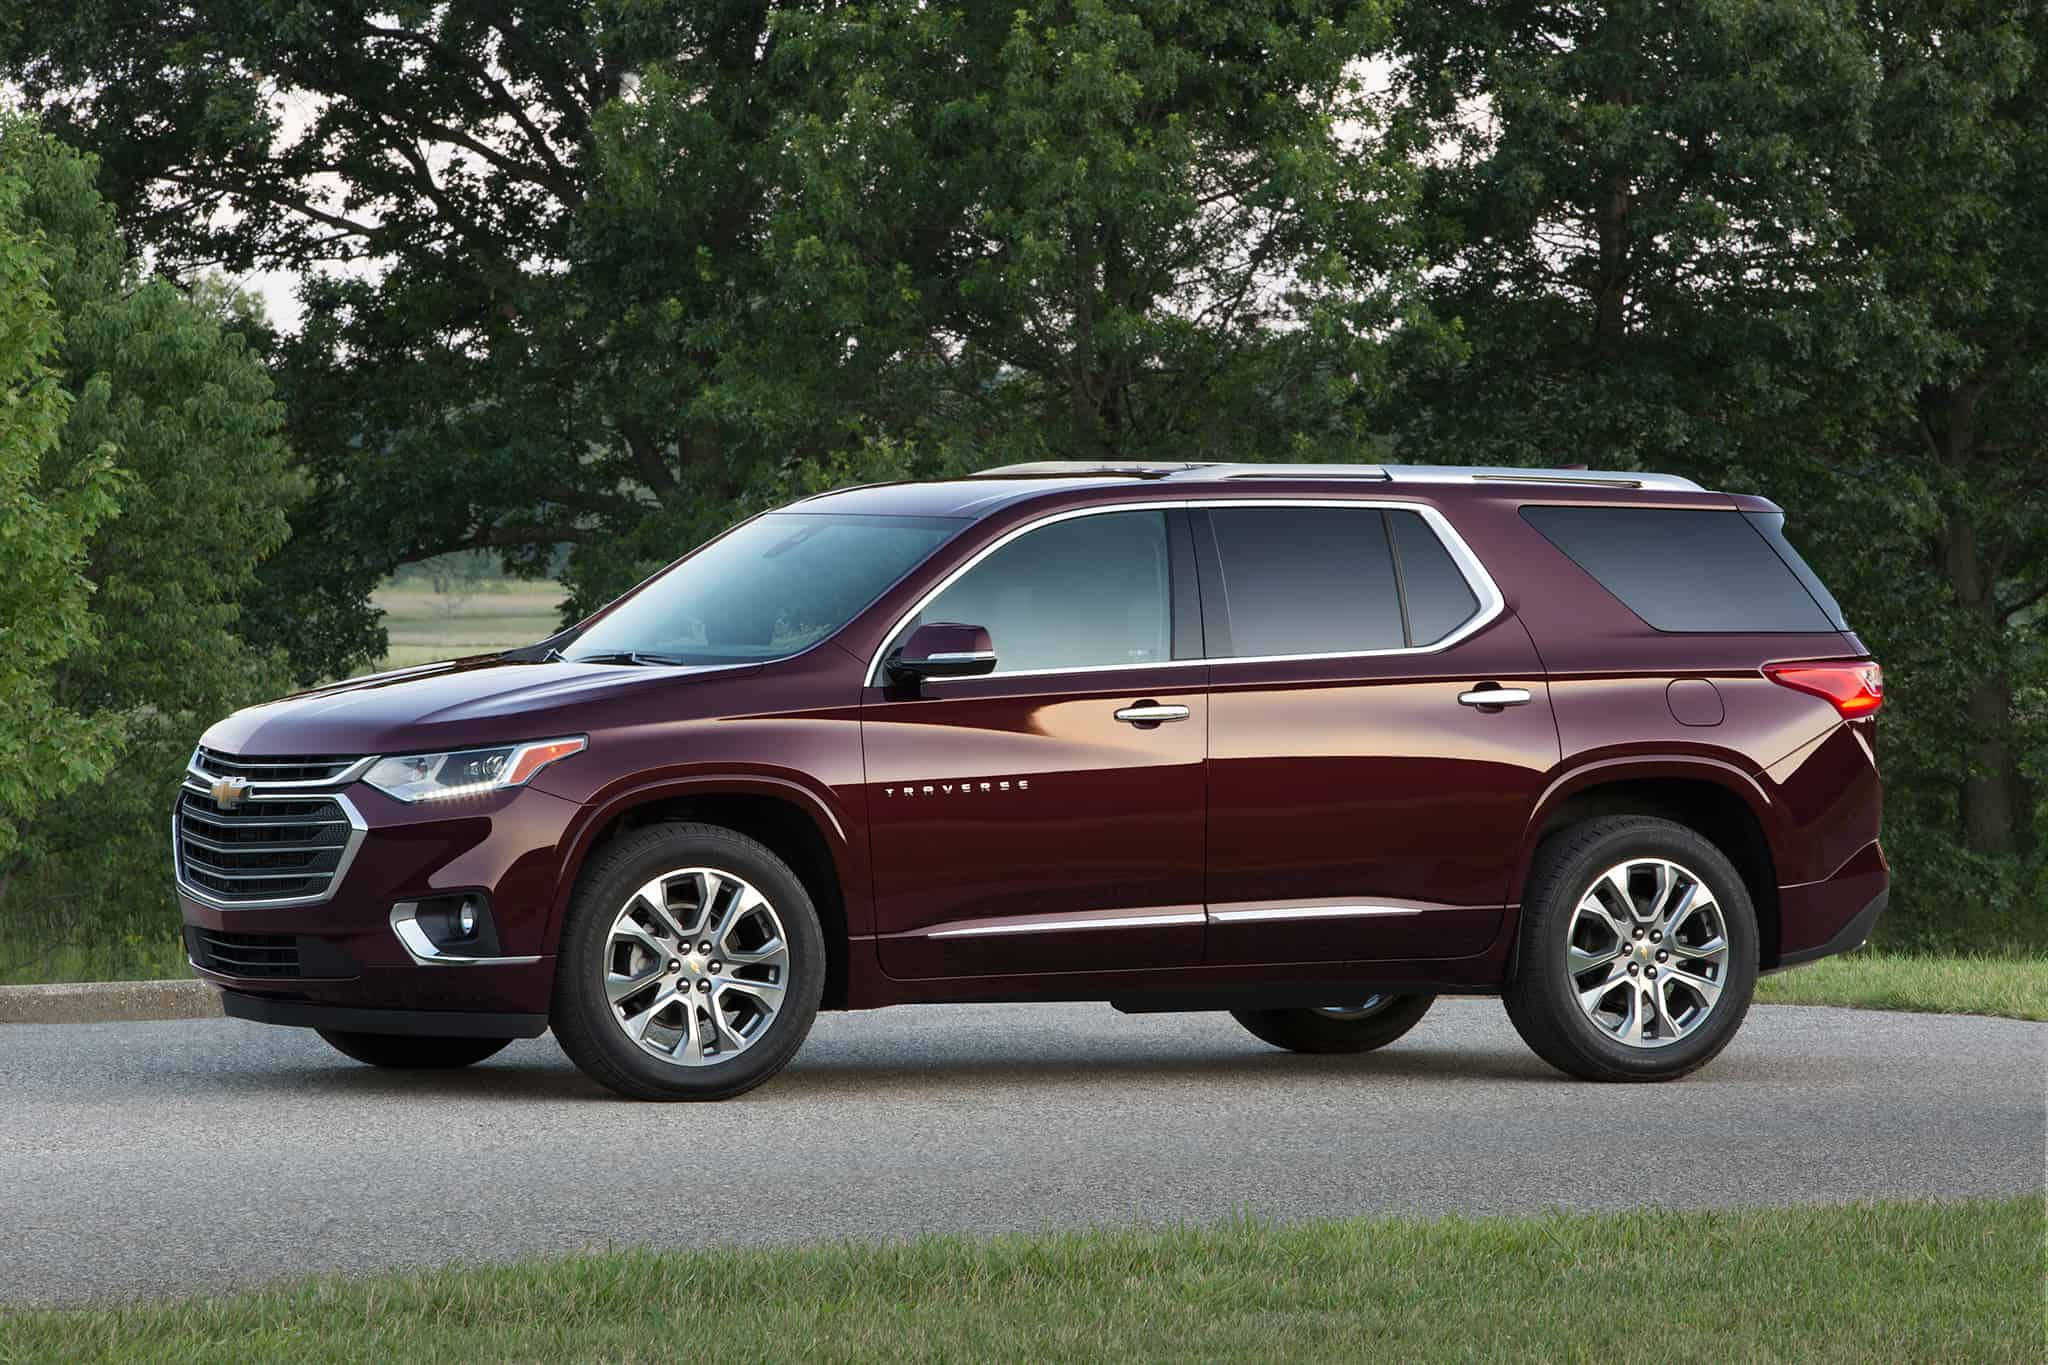 The Chevrolet Traverse is a great family Chevy SUV.